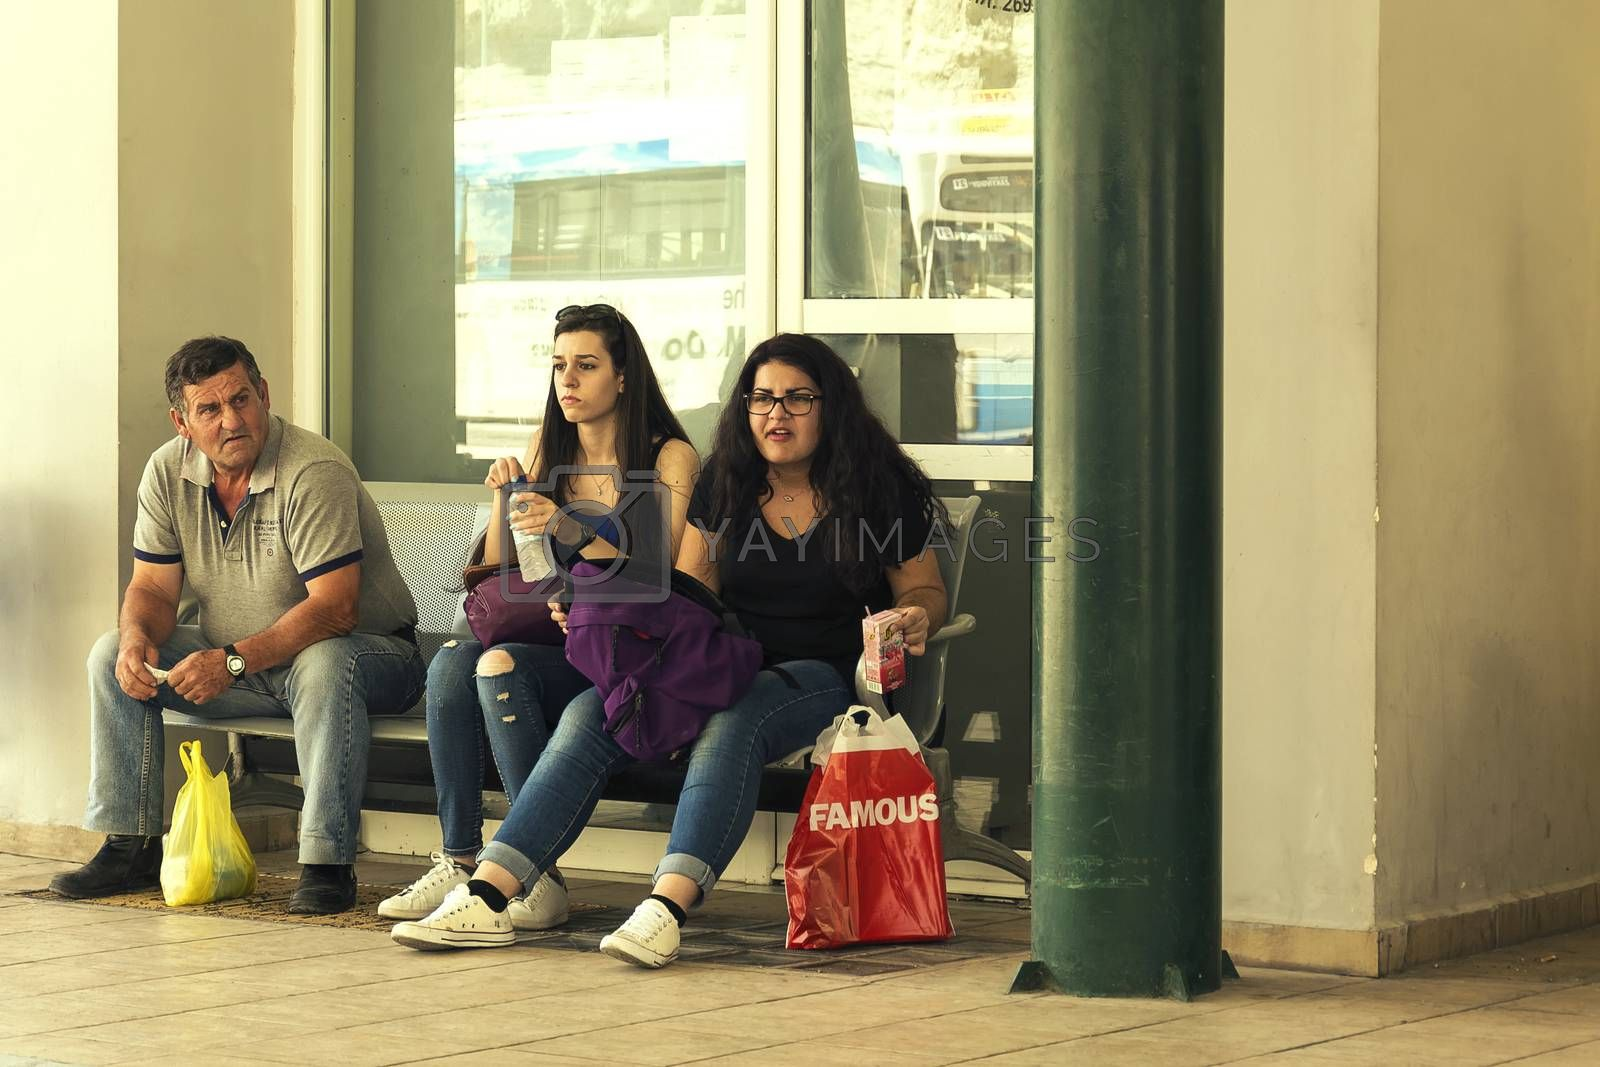 Royalty free image of Two young girls and an elderly man sit on a bench waiting for a by Grommik